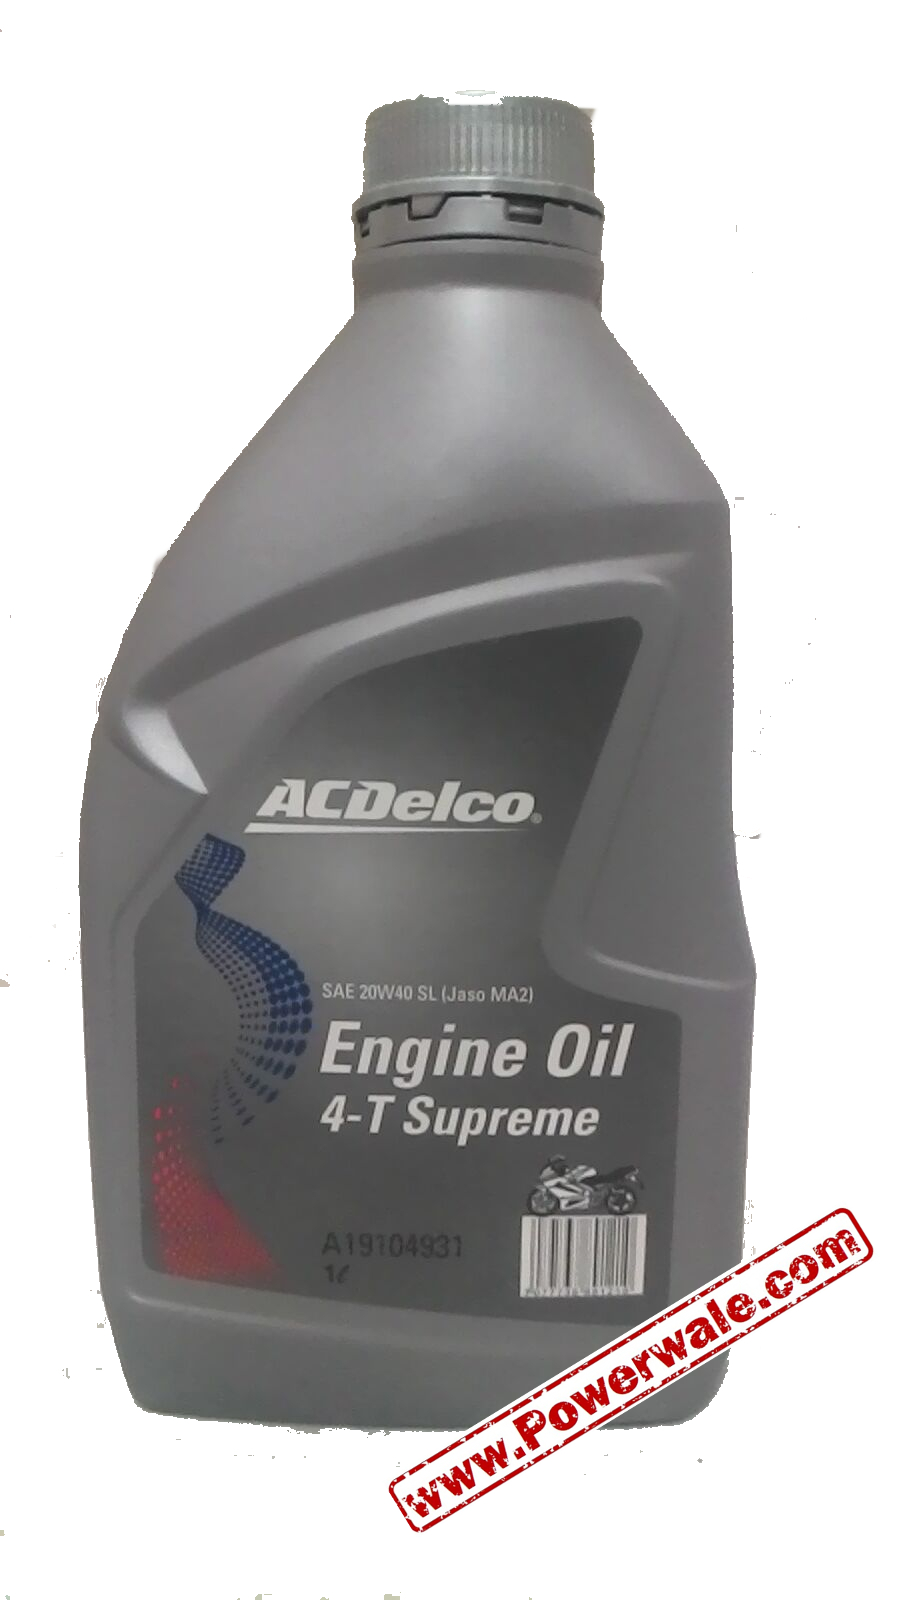 Acdelco india buy acdelco online at best prices powerwale for Best price motor oil